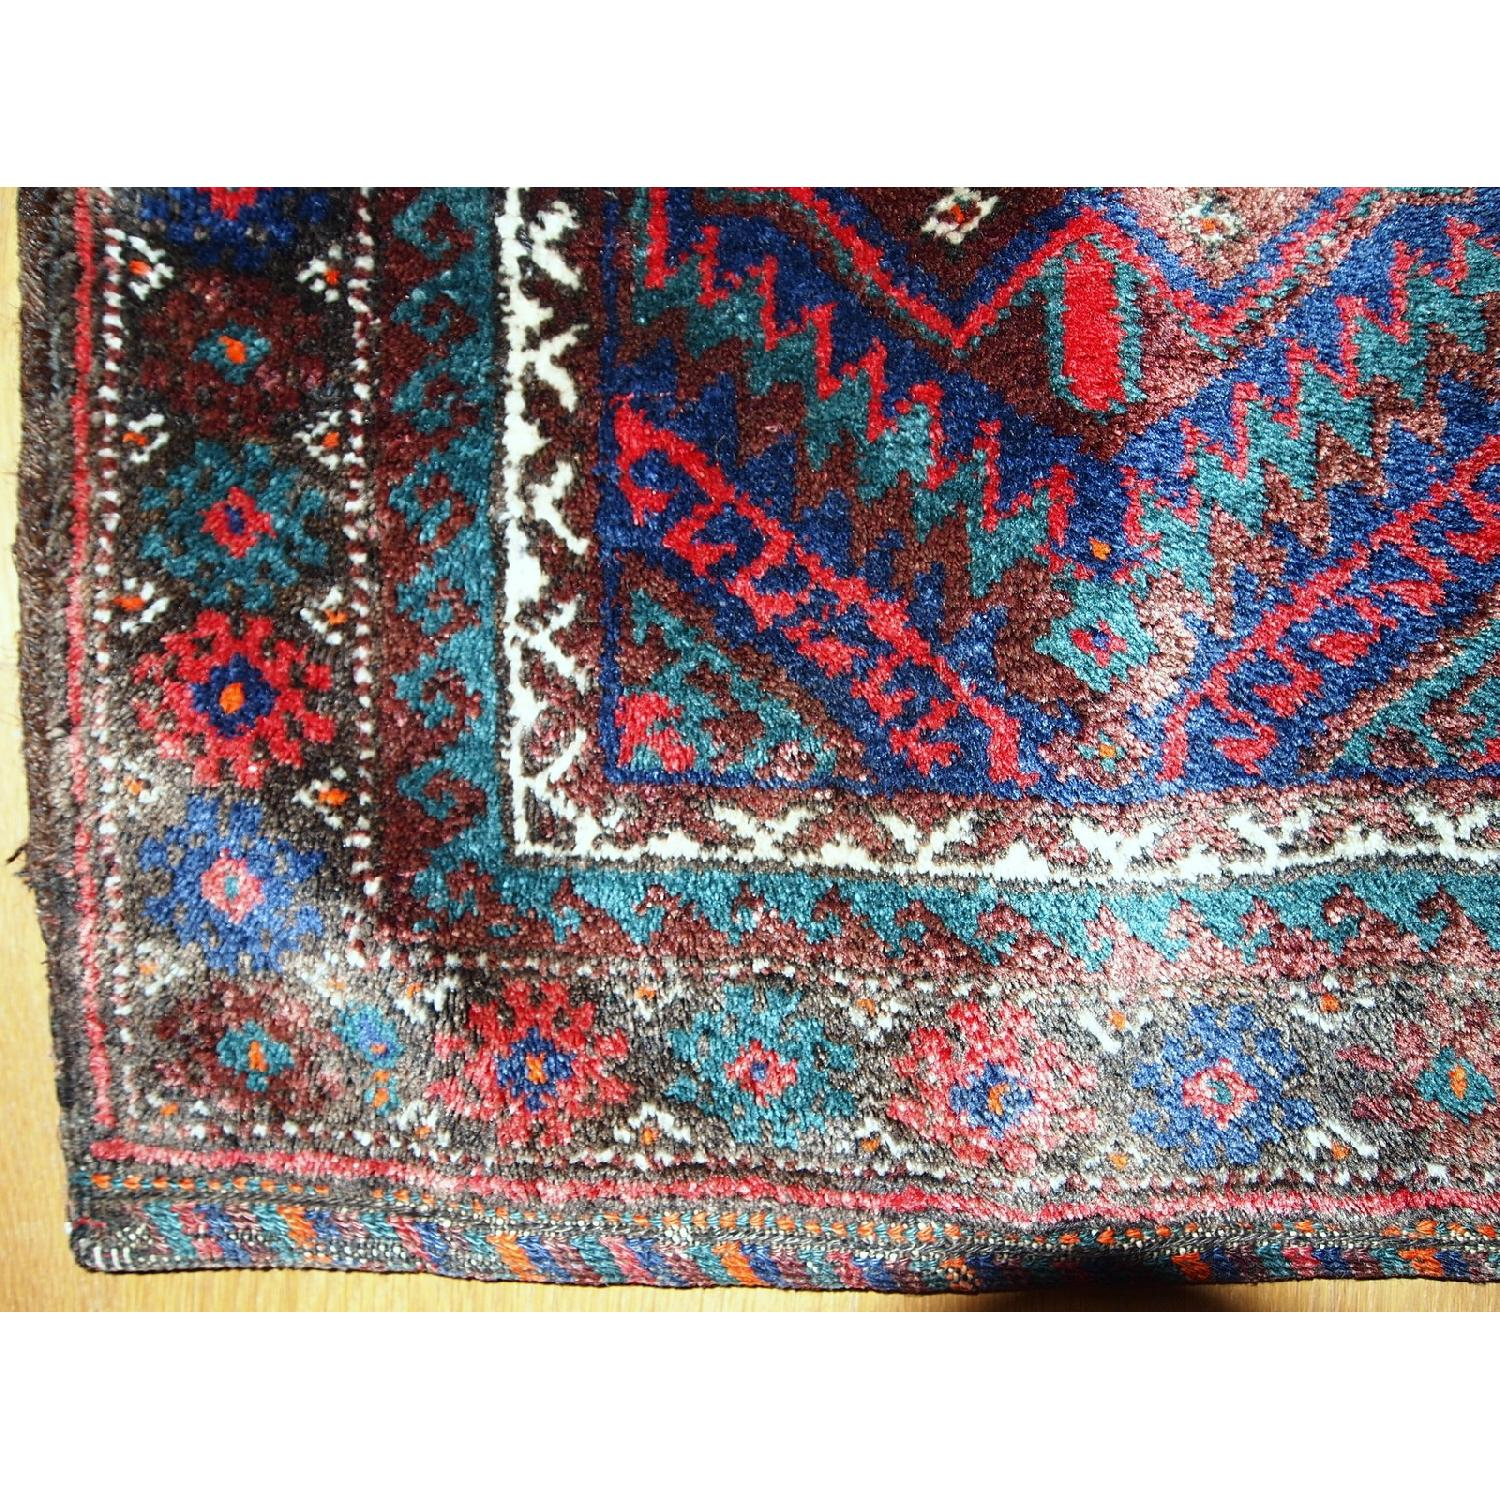 Antique Handmade Persian Kurdish Salt Bag Rug - image-9